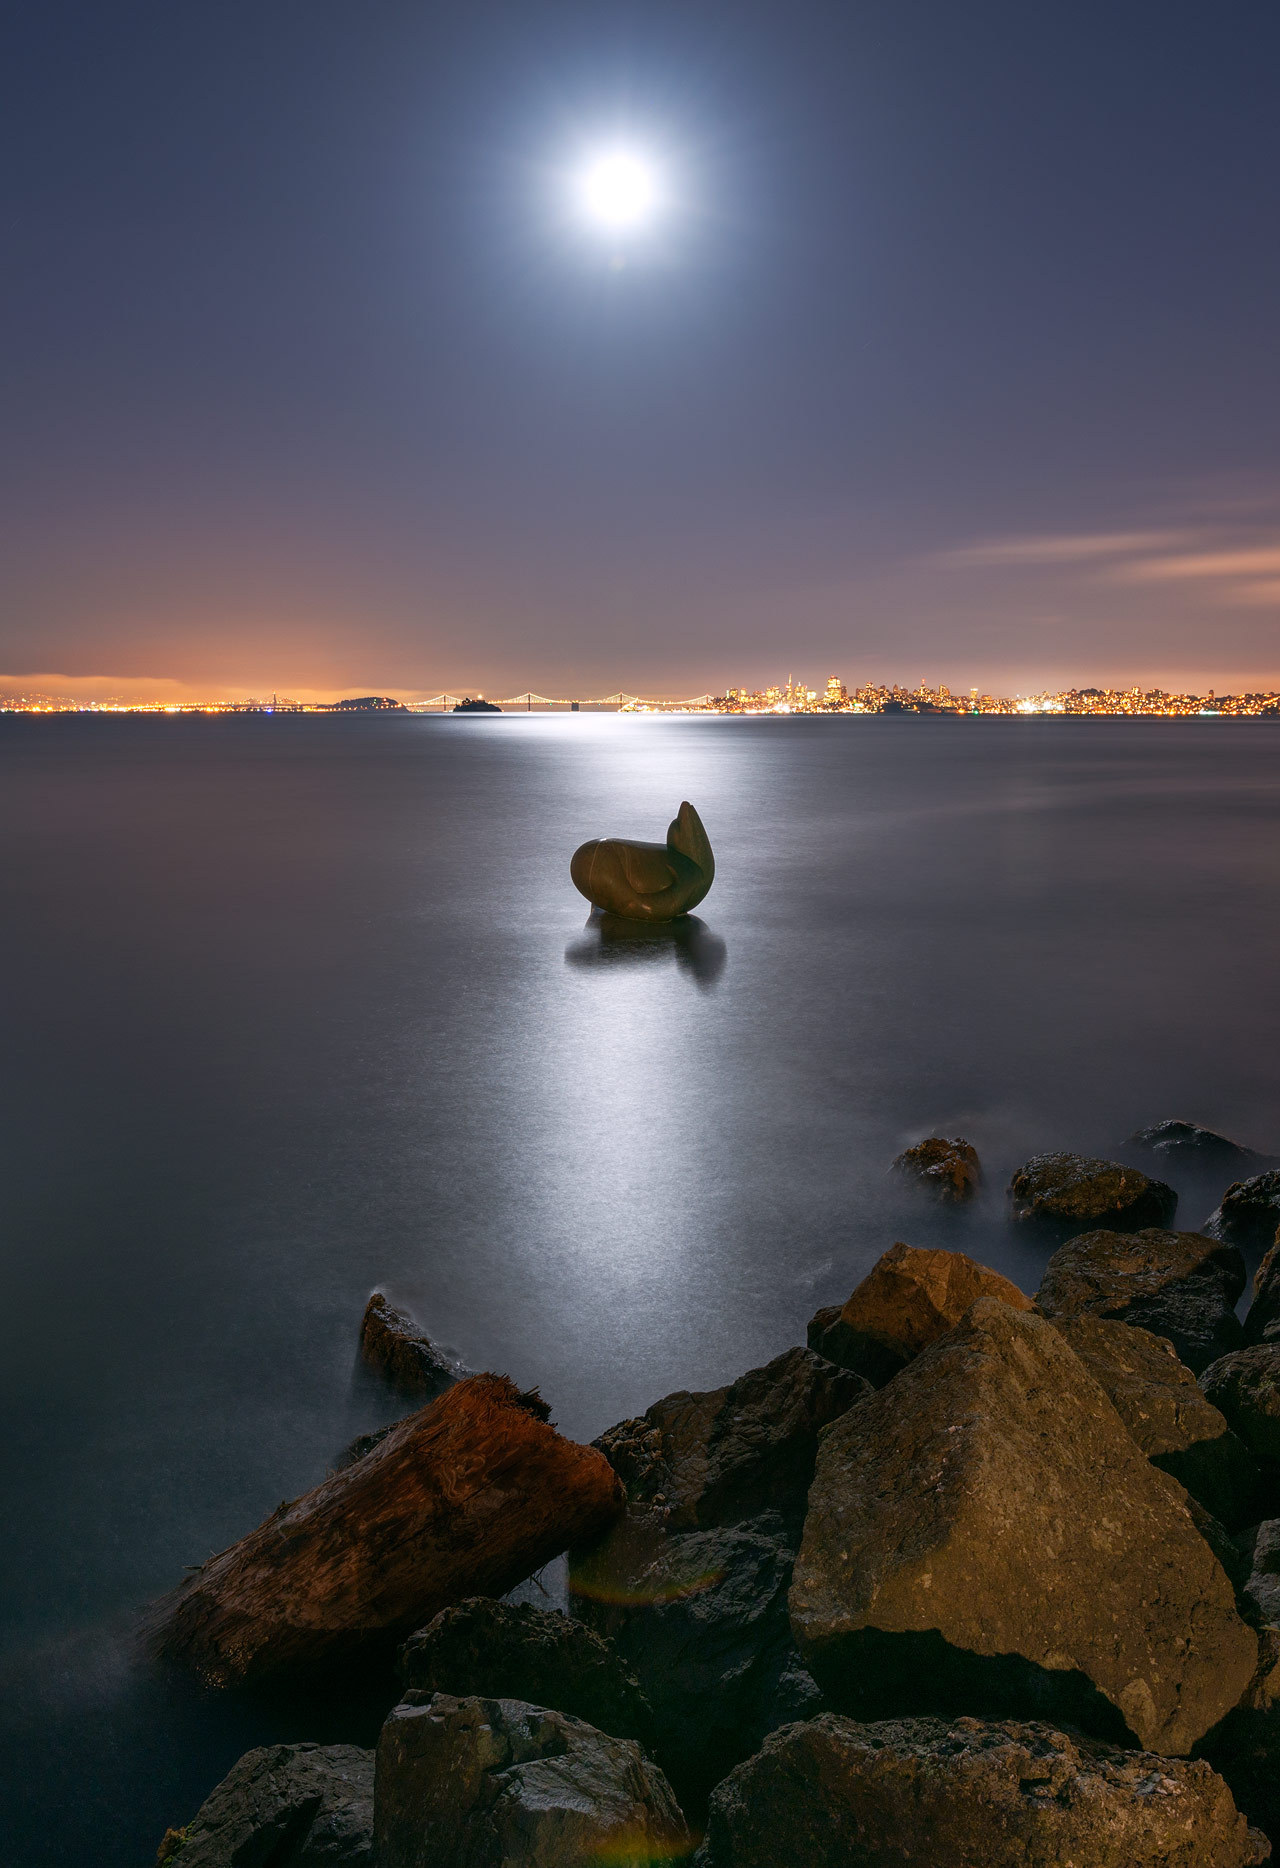 Moonlight Sentinel  Full moon rising in Sausalito  Sausalito detour, the day before these three photos were taken.  View on Flickr